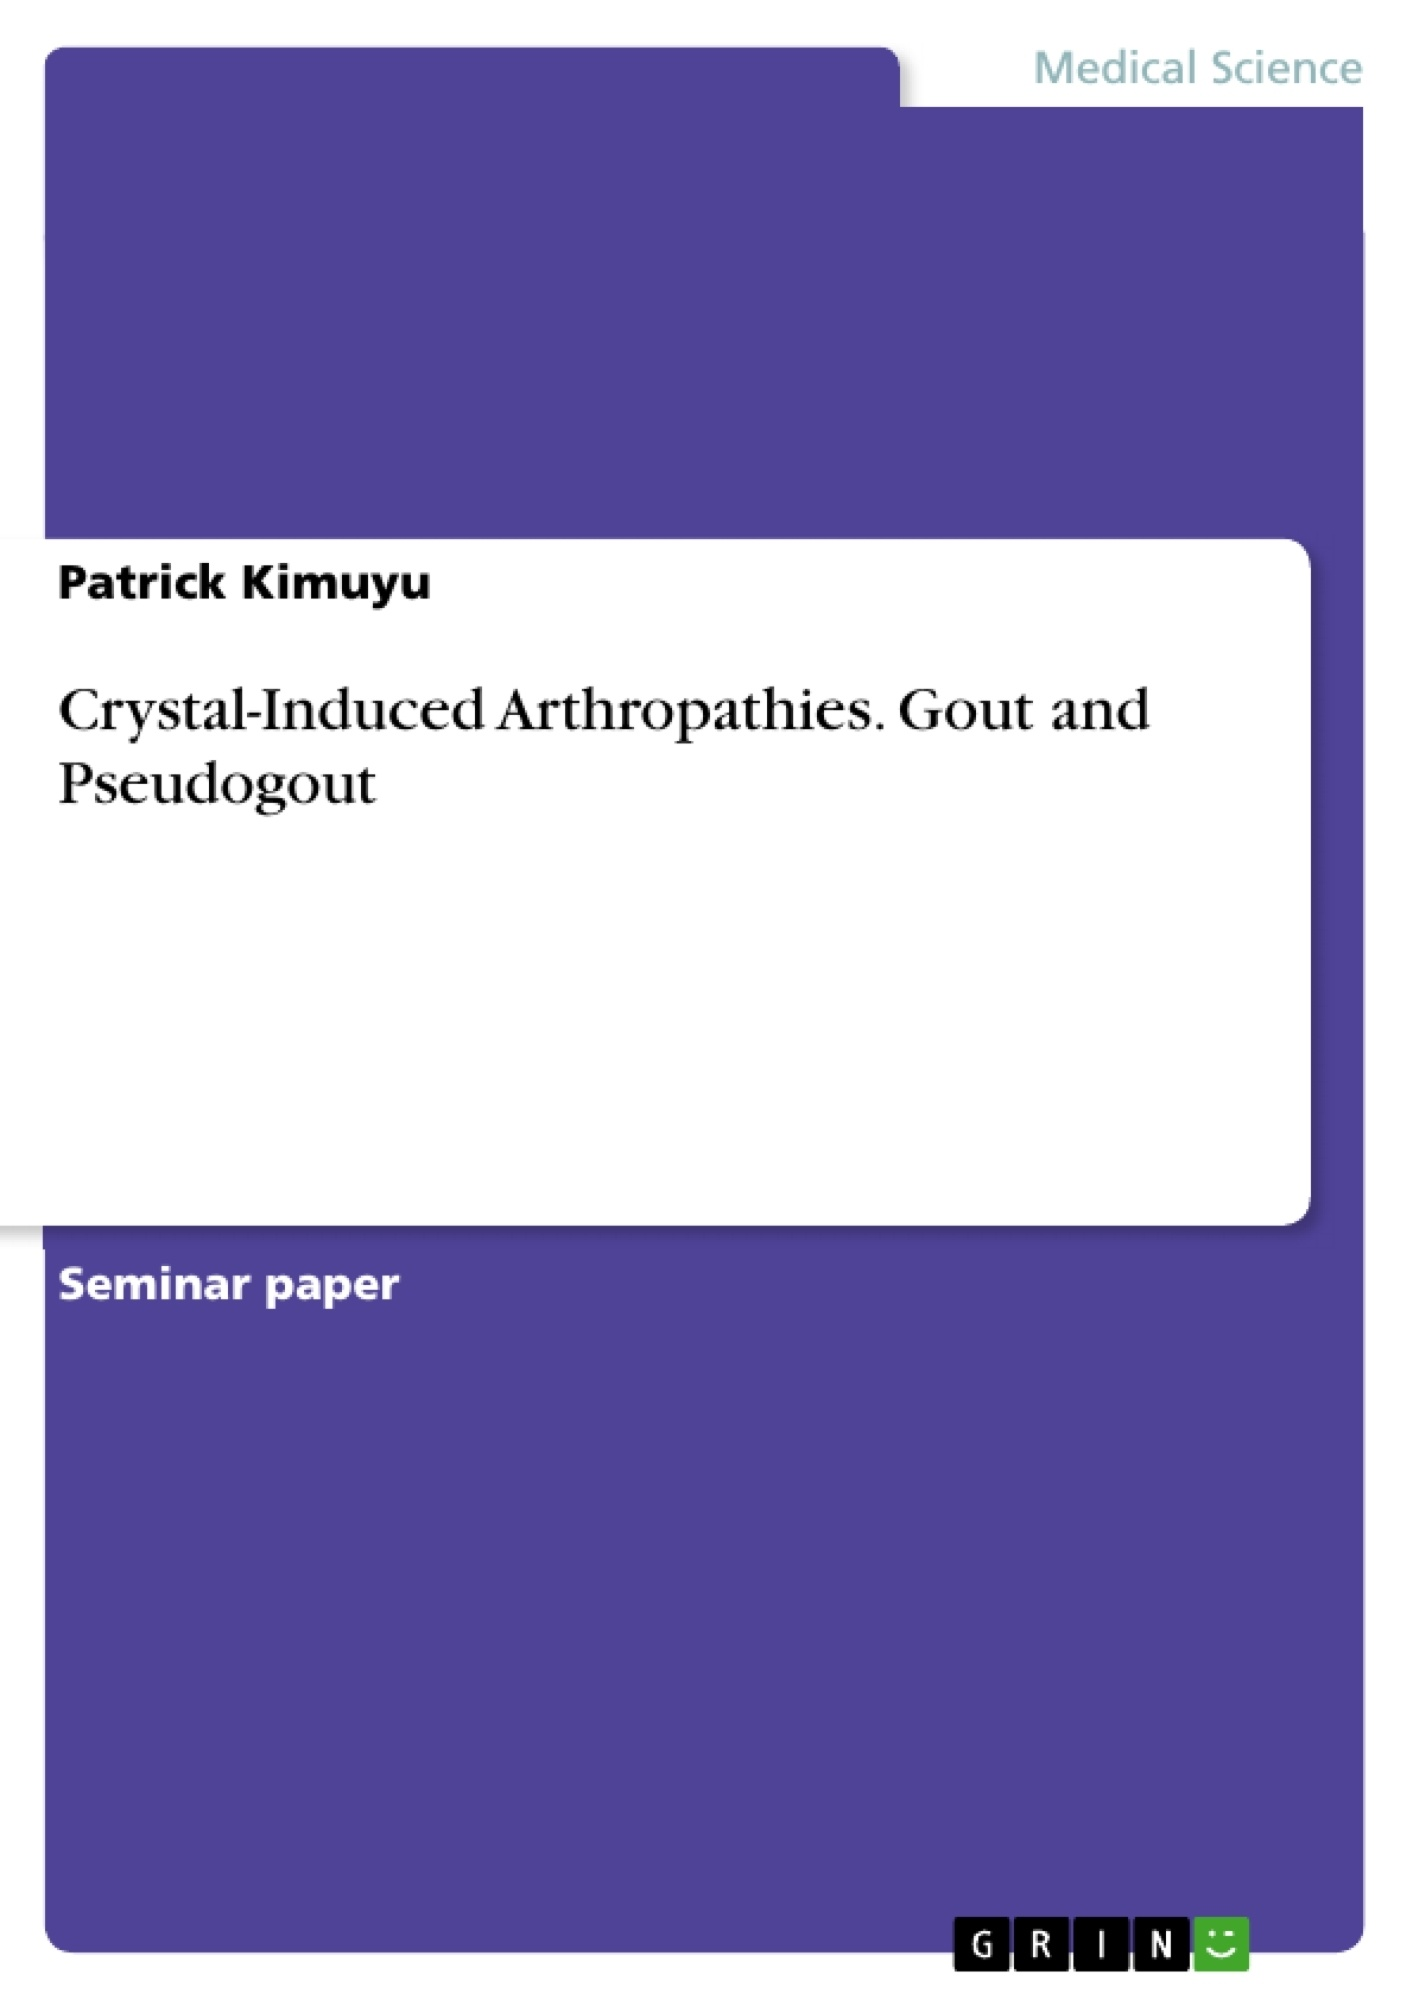 Title: Crystal-Induced Arthropathies. Gout and Pseudogout